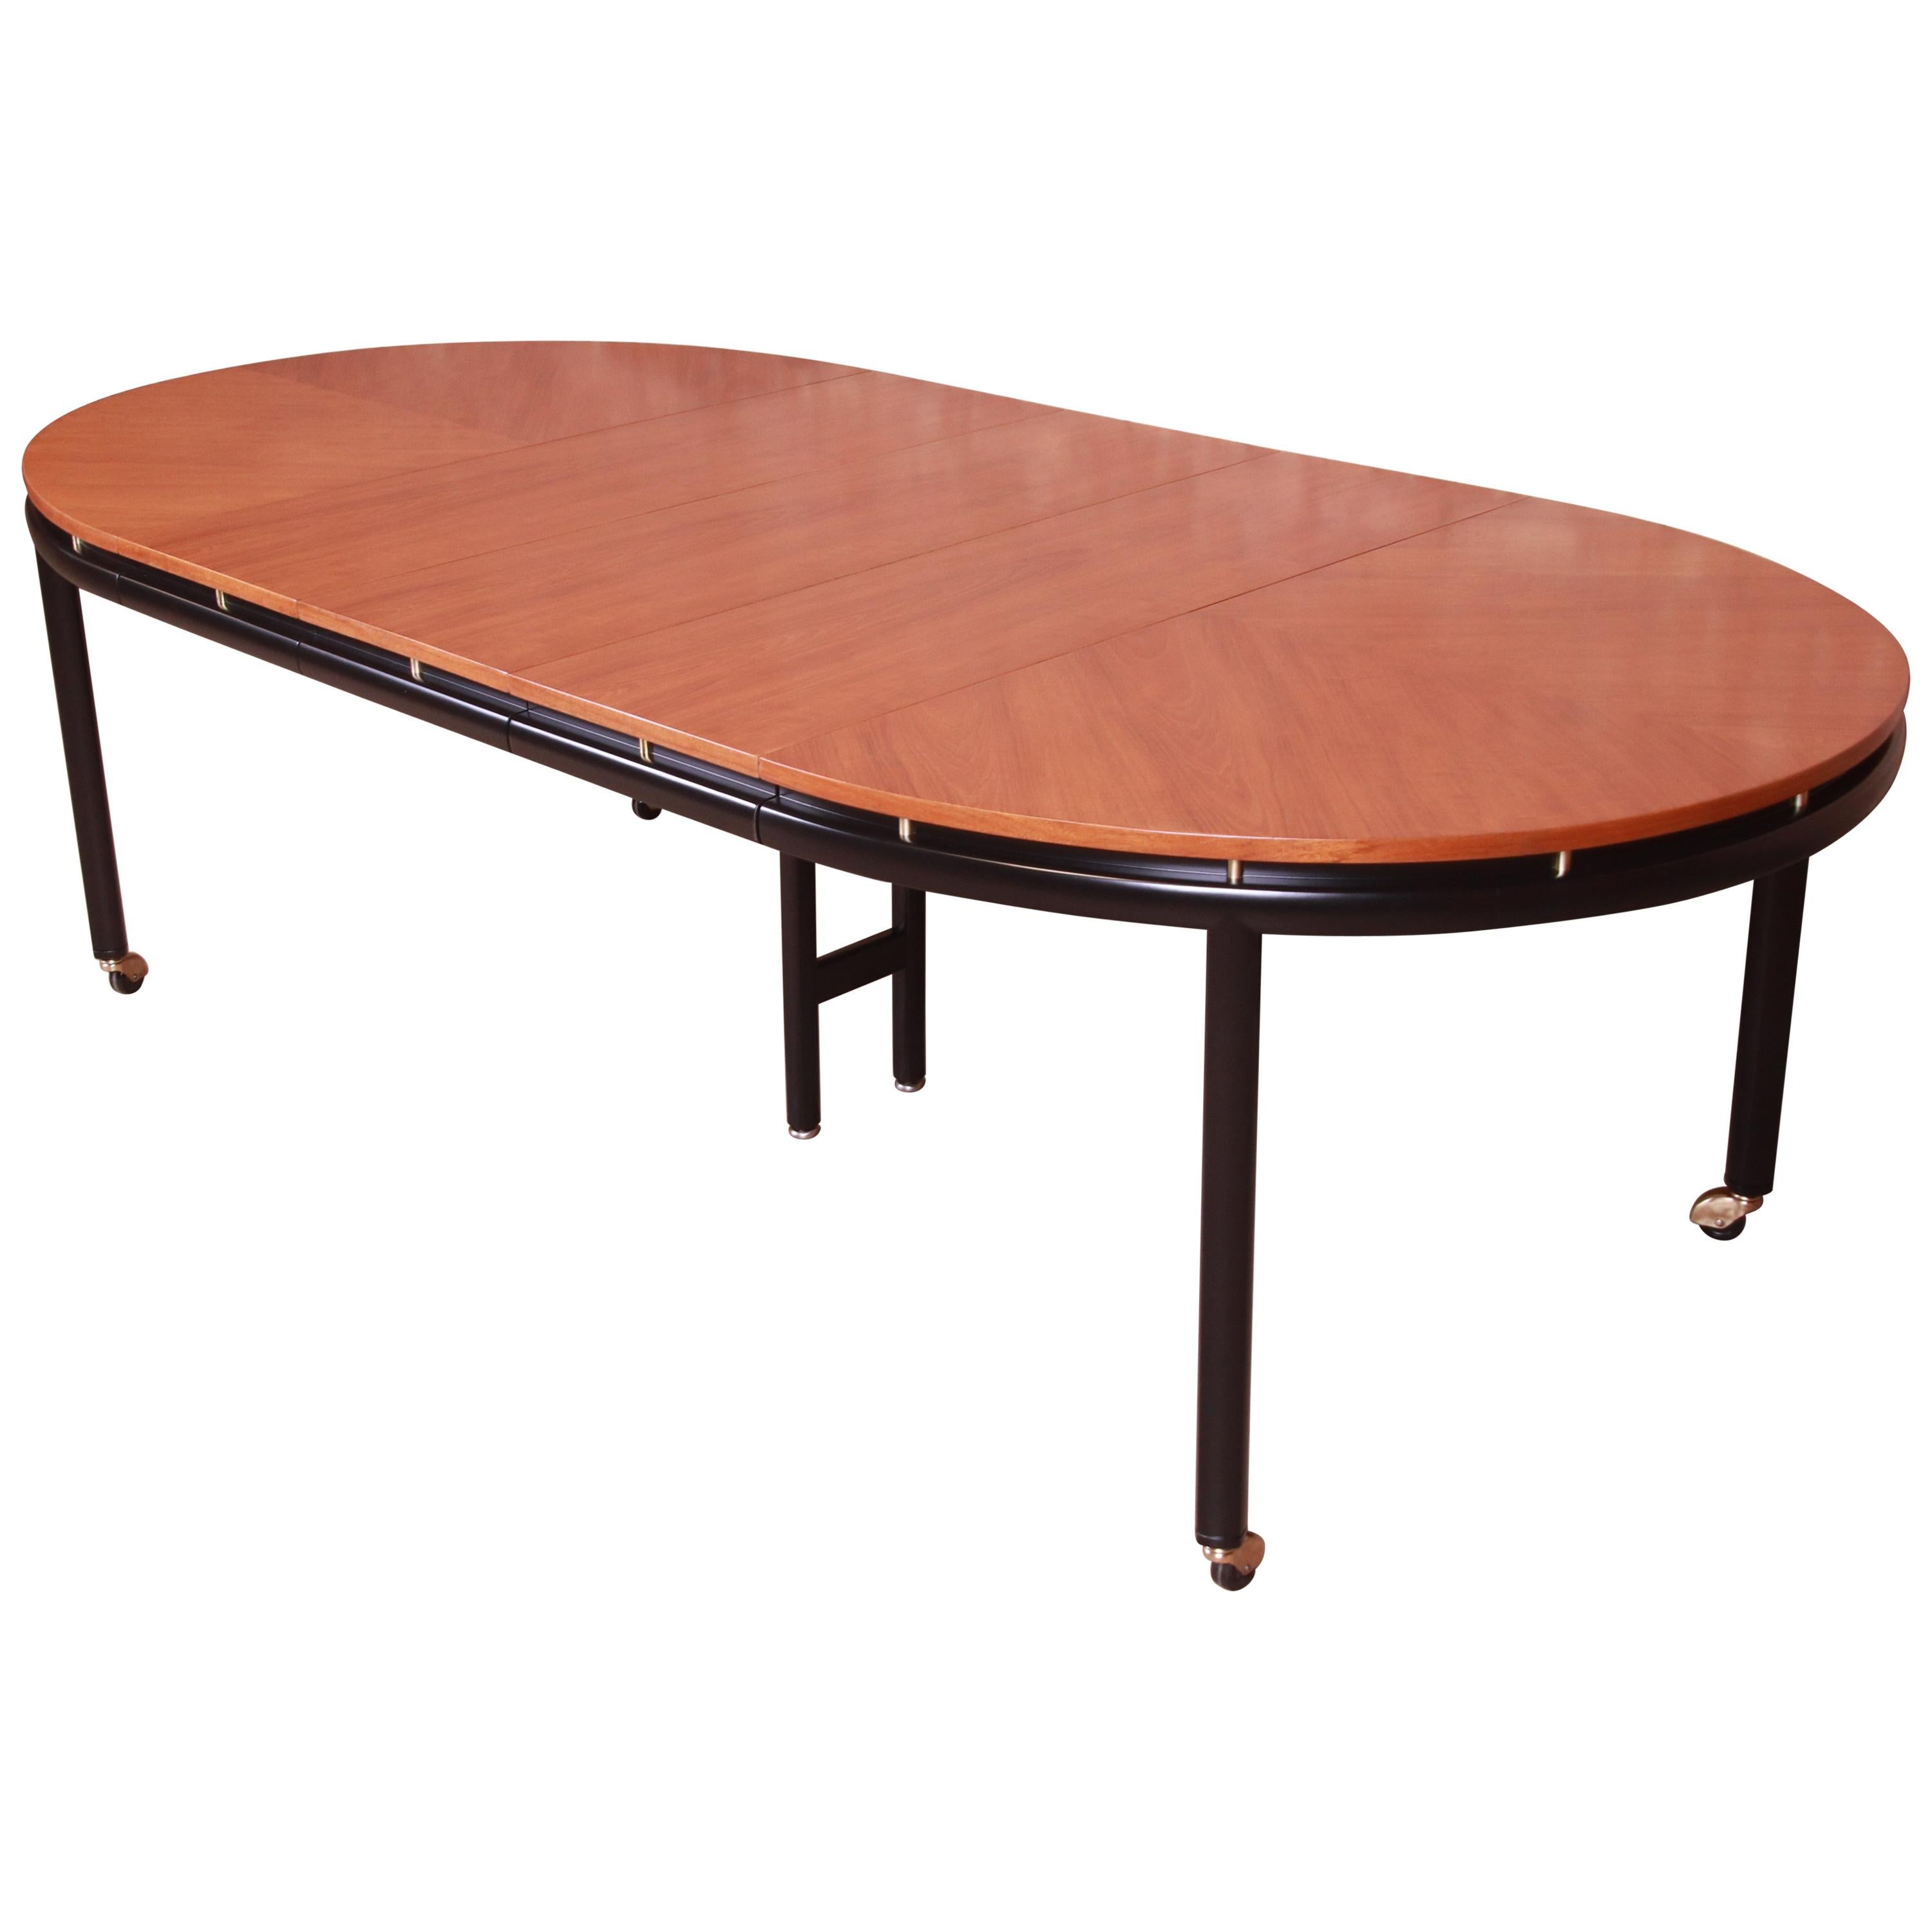 Michael Taylor for Baker Cherrywood and Black Lacquer Dining Table, Refinished